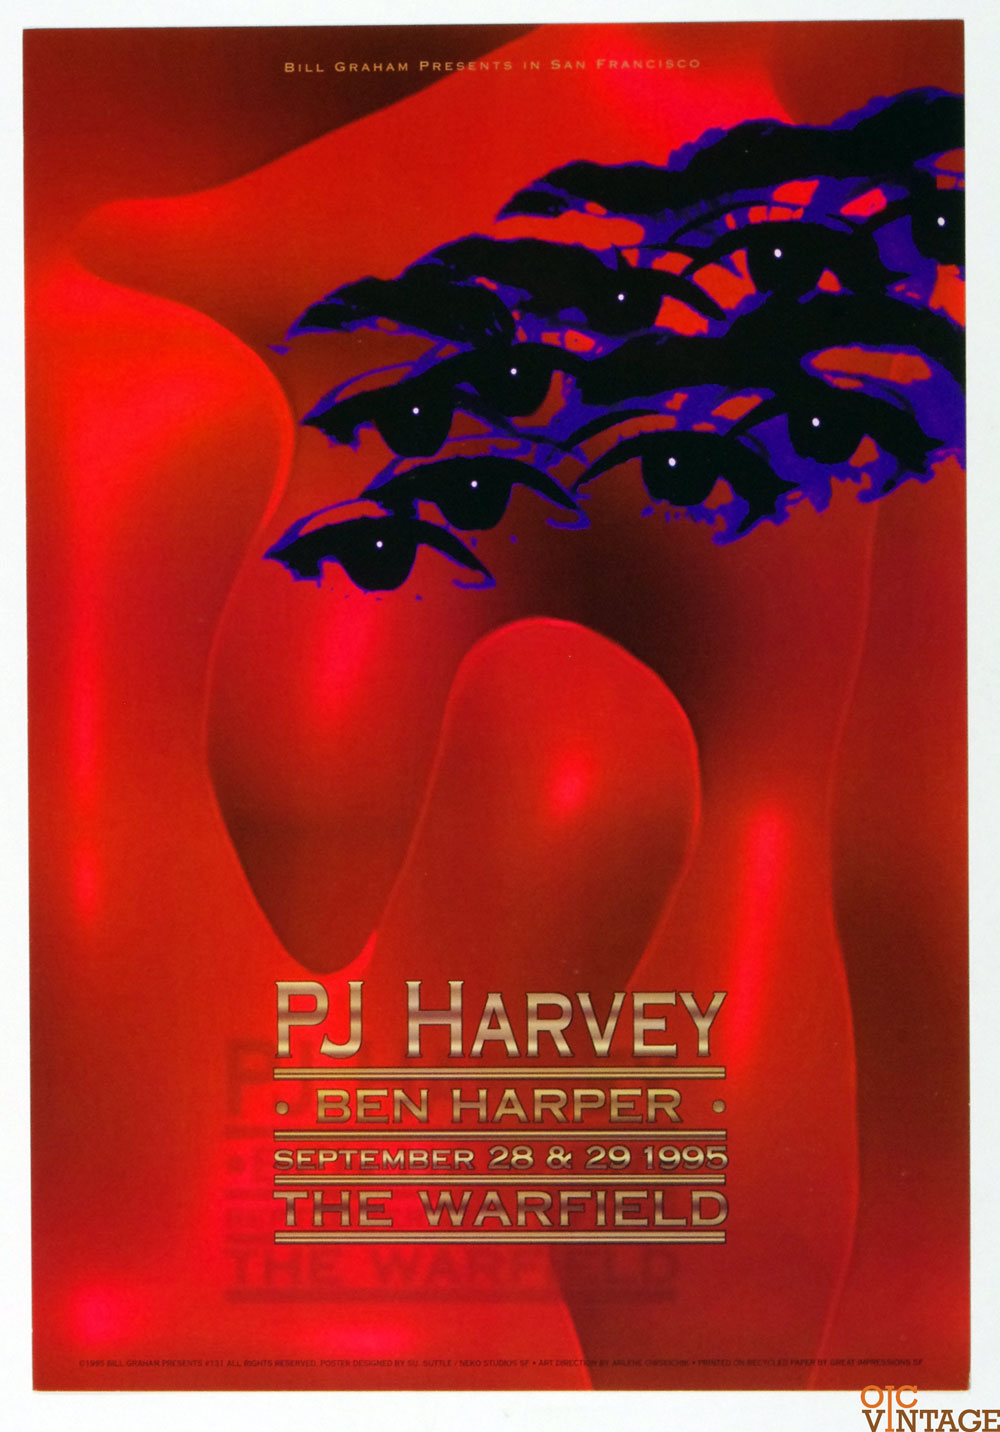 Bill Graham Presents Poster 1995 Sep 28 PJ Harvey Ben Harper #131